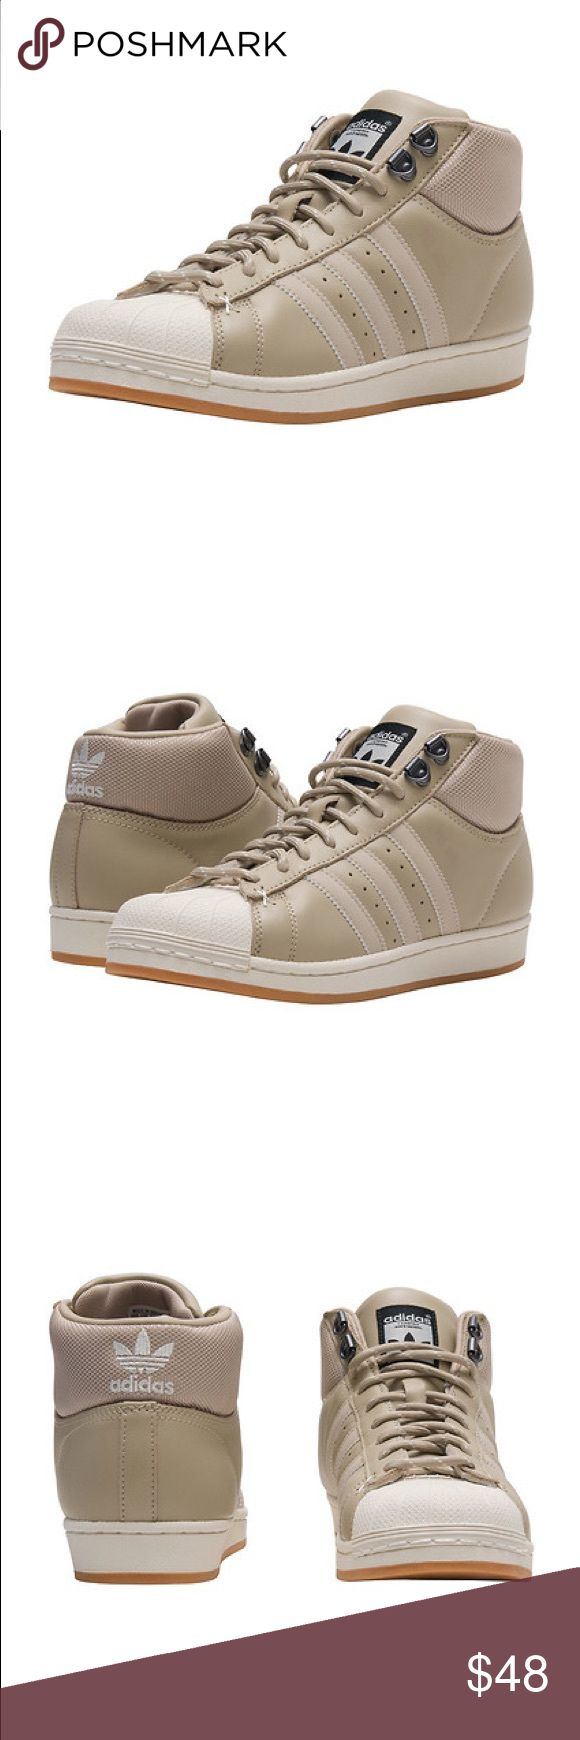 NWT ADIDAS PRO MODEL Beige-Khaki - women. size 6.5 NWT ADIDAS PRO MODEL Beige-Khaki - women size 6.5. High top. Look very cool. Will fit 6 and 7 also adidas Shoes Ankle Boots & Booties